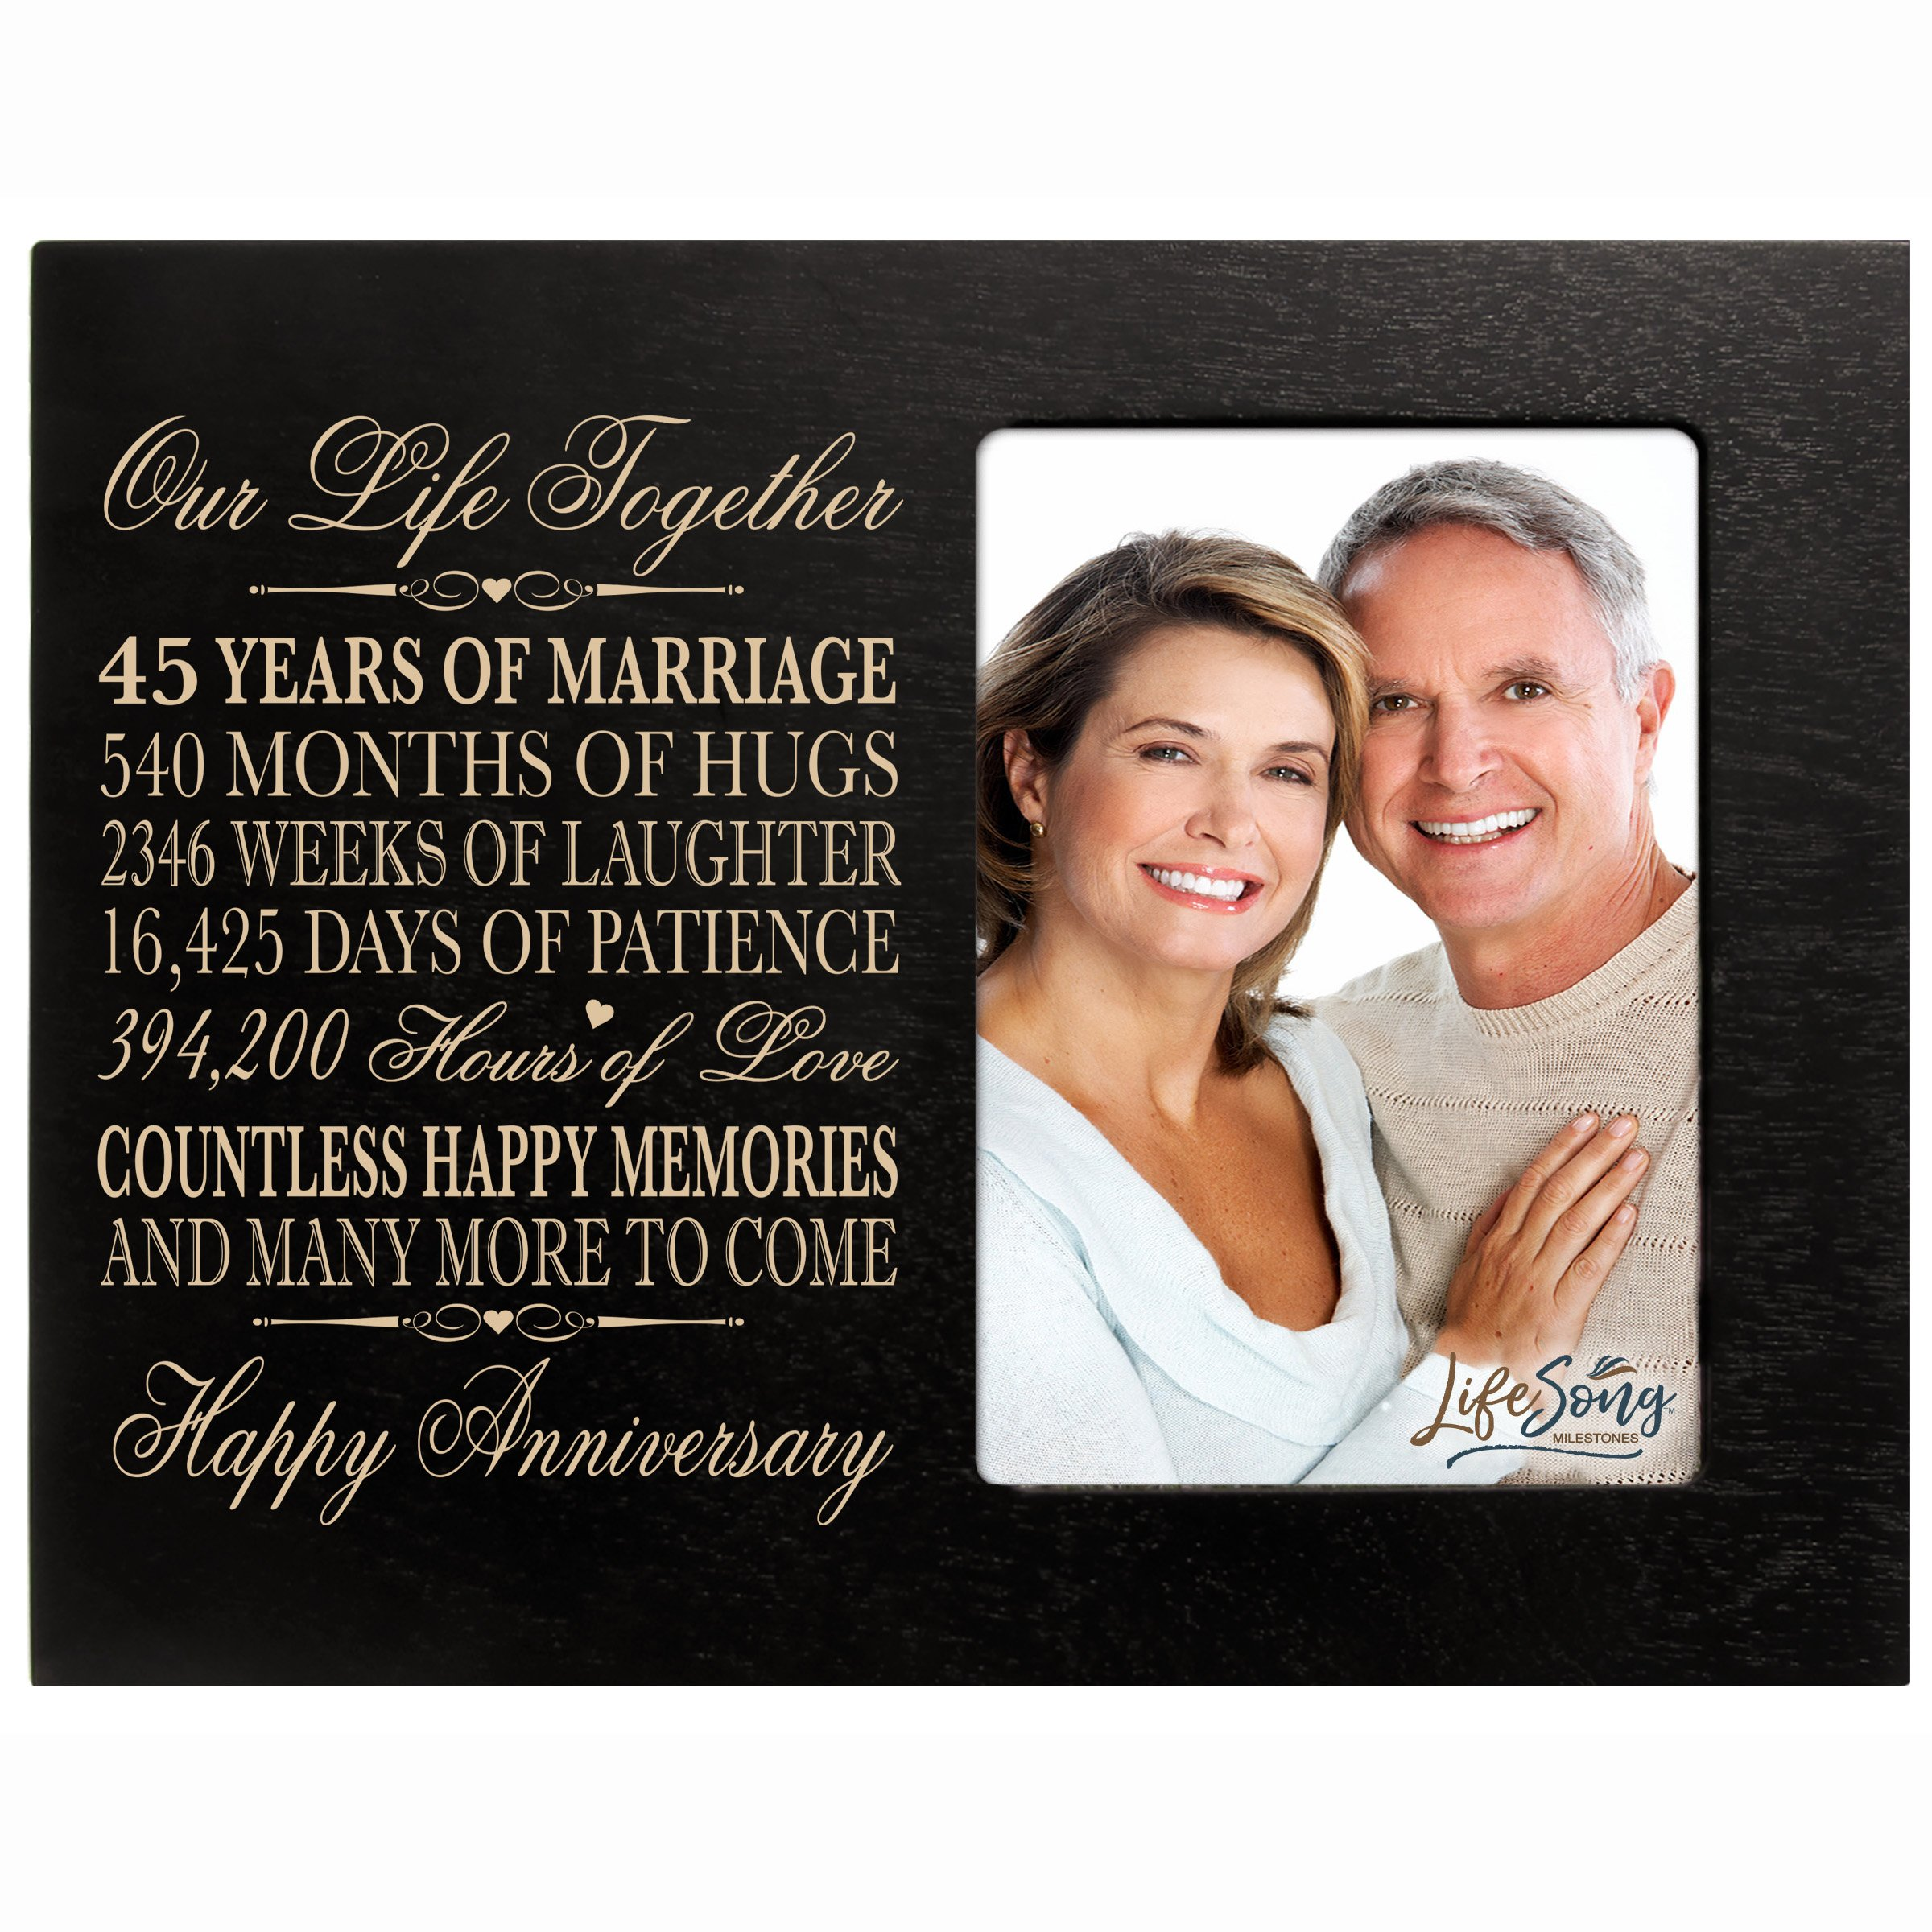 LifeSong Milestones 45 Year Wedding Anniversary Frame Gift for him her Couple Custom Engraved 45th Year Wedding Celebration for Husband or Wife Photo Frame Holds 1 4x6 Photo 8'' H X 10'' W (Black) by LifeSong Milestones